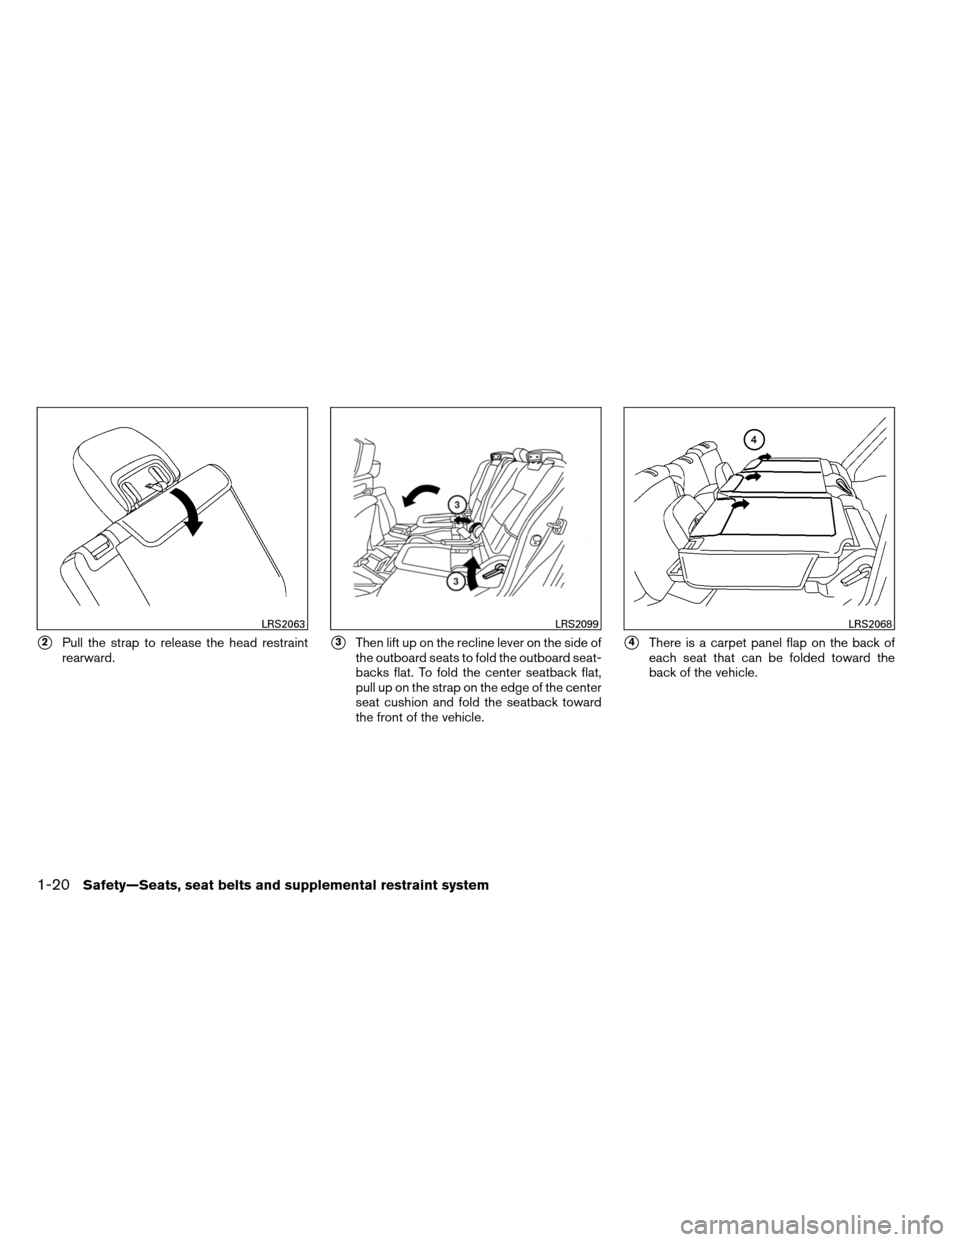 NISSAN ARMADA 2013 1.G Owners Guide 2Pull the strap to release the head restraint rearward.3Then lift up on the recline lever on the side of the outboard seats to fold the outboard seat- backs flat. To fold the center seatback flat, p